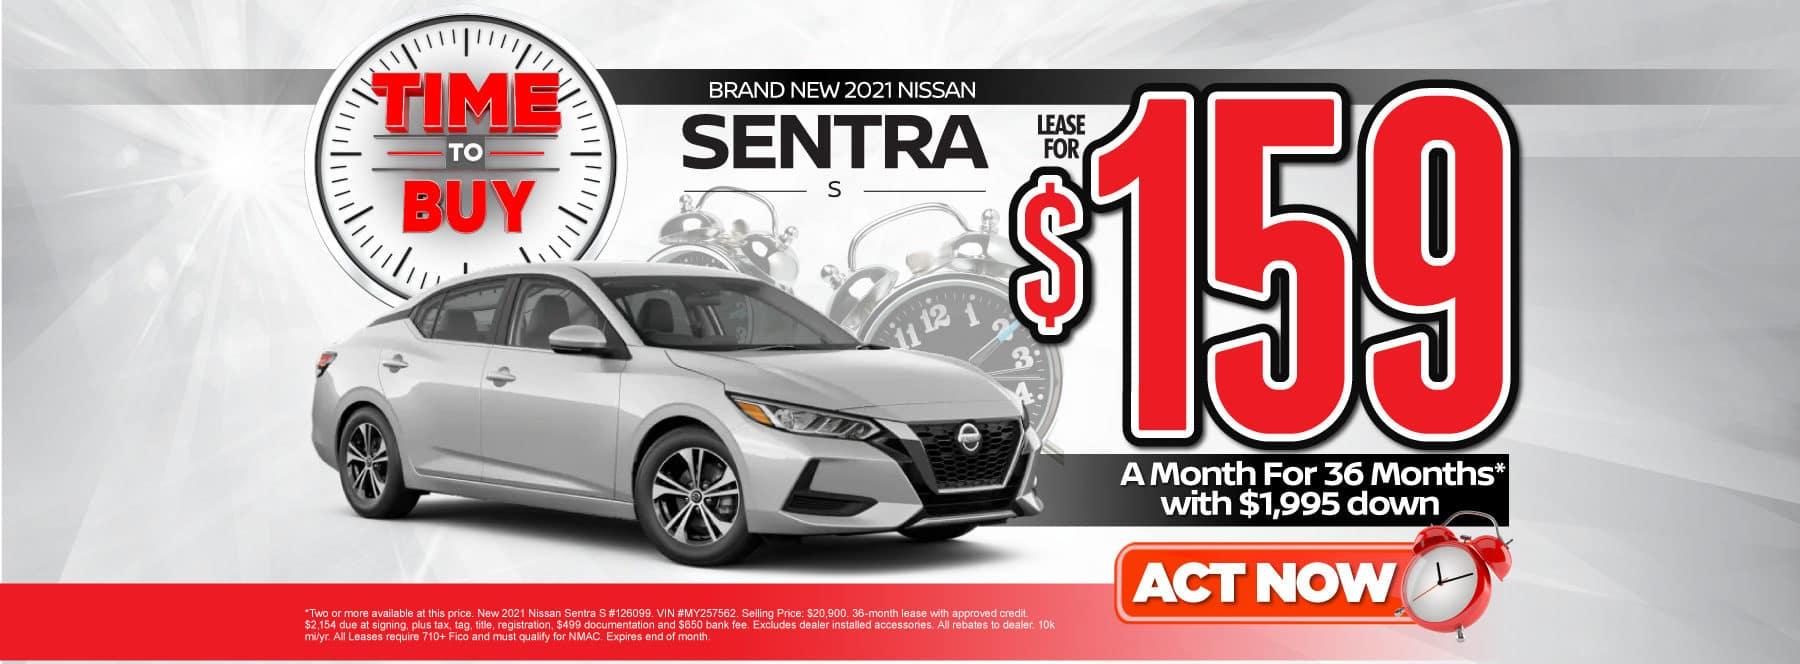 New 2021 Nissan Sentra | Lease for $159 a month | Act Now